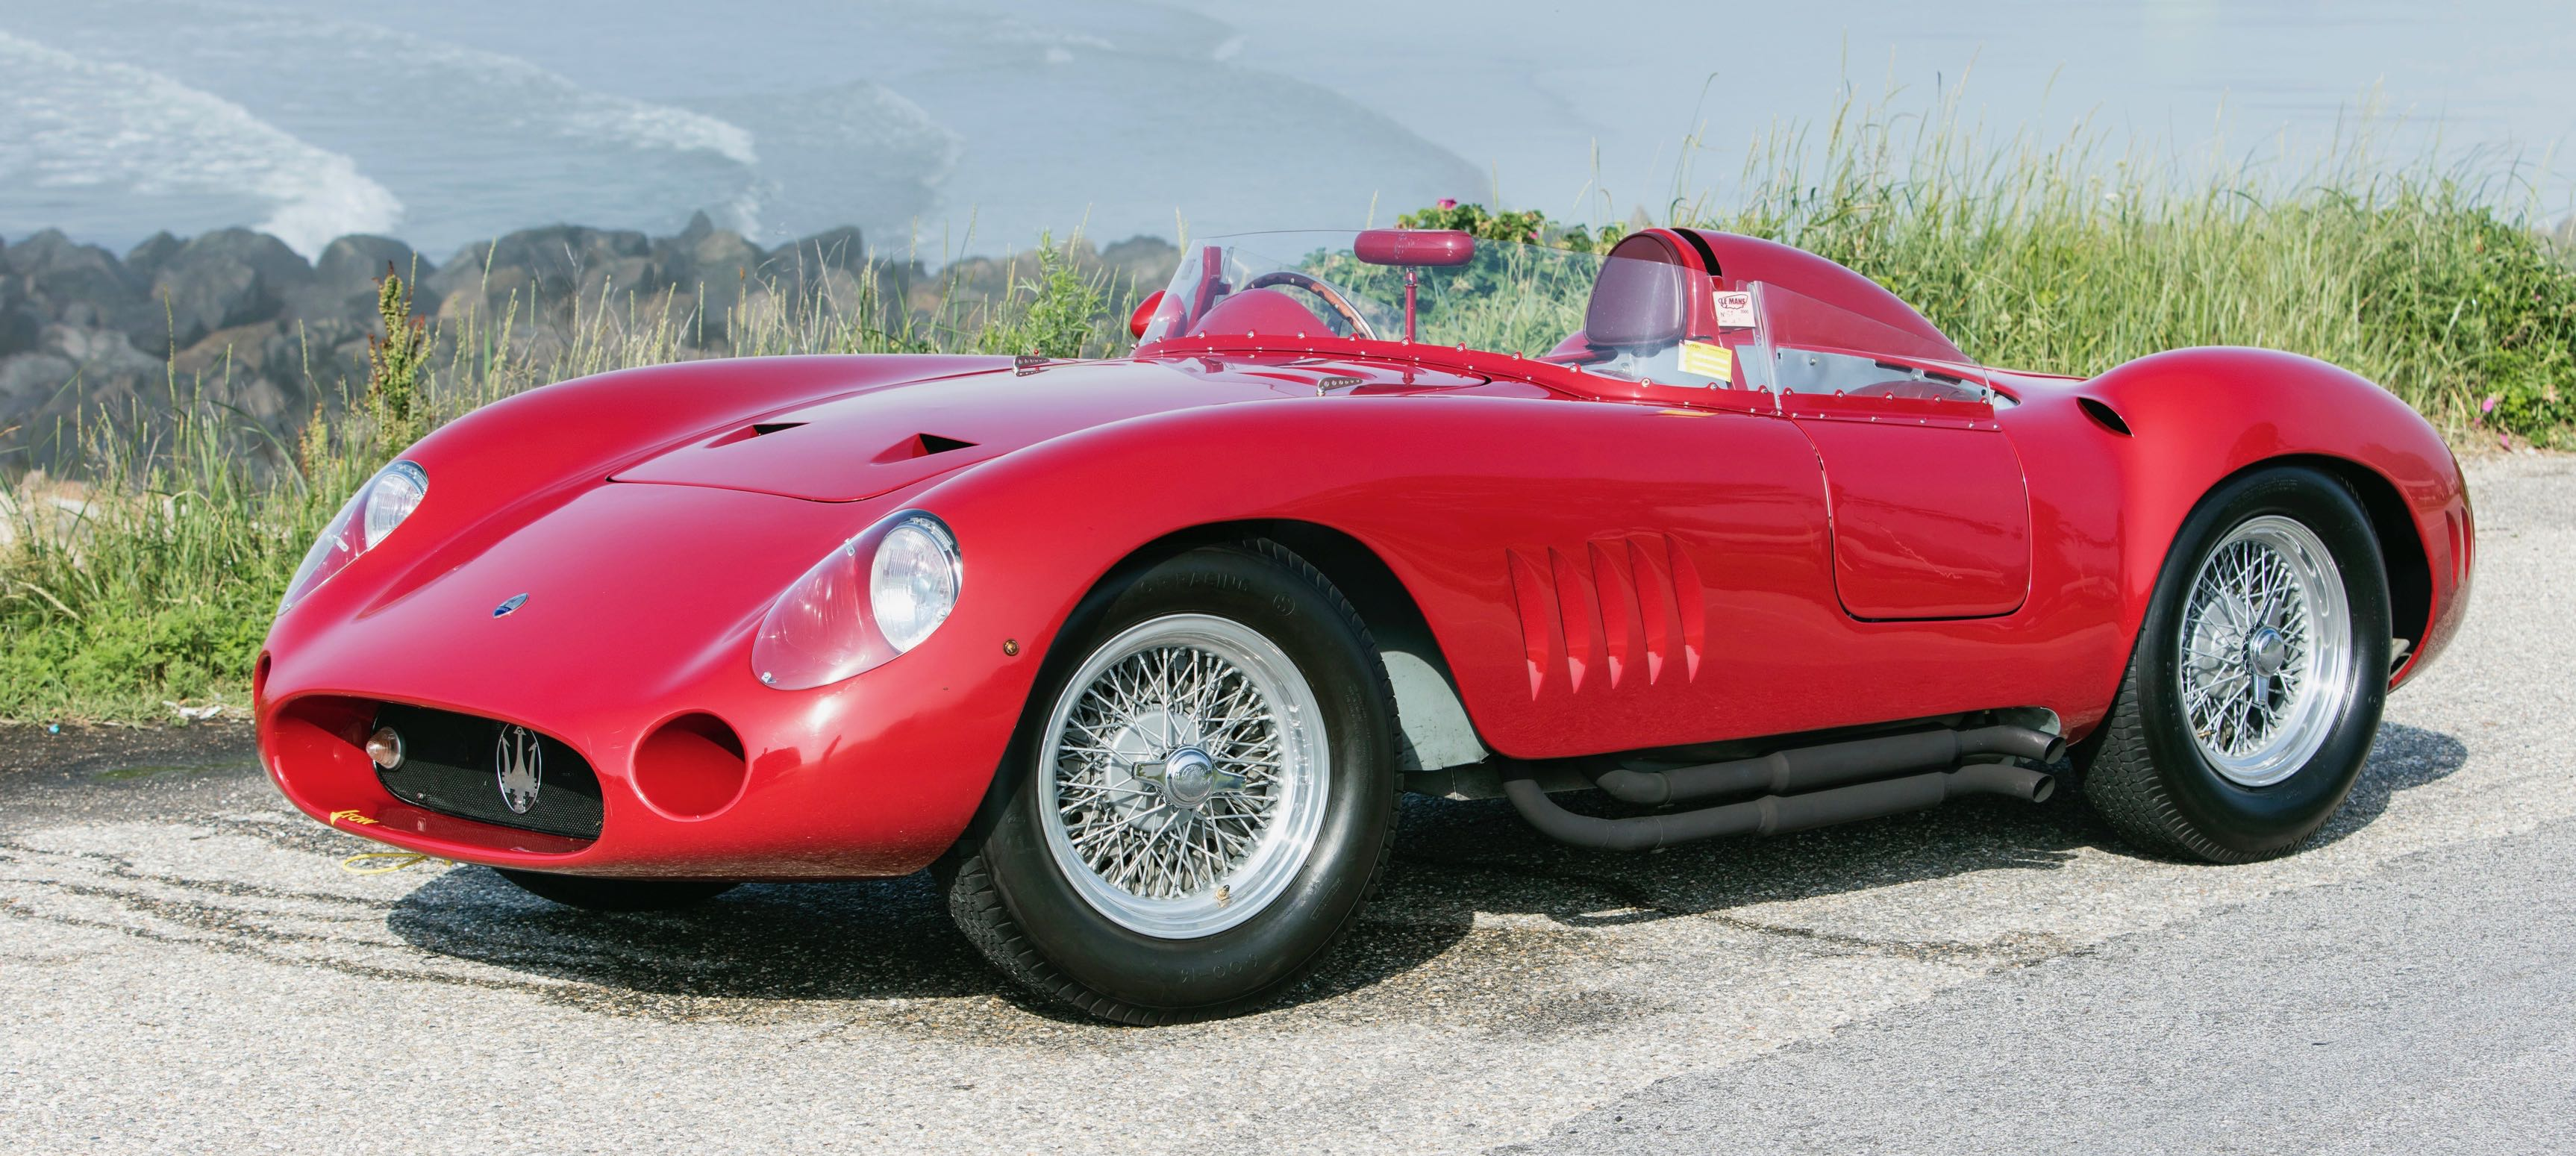 Juan Manual Fangio won two major races in this 1957 Maserati 300 S | Bonhams photos